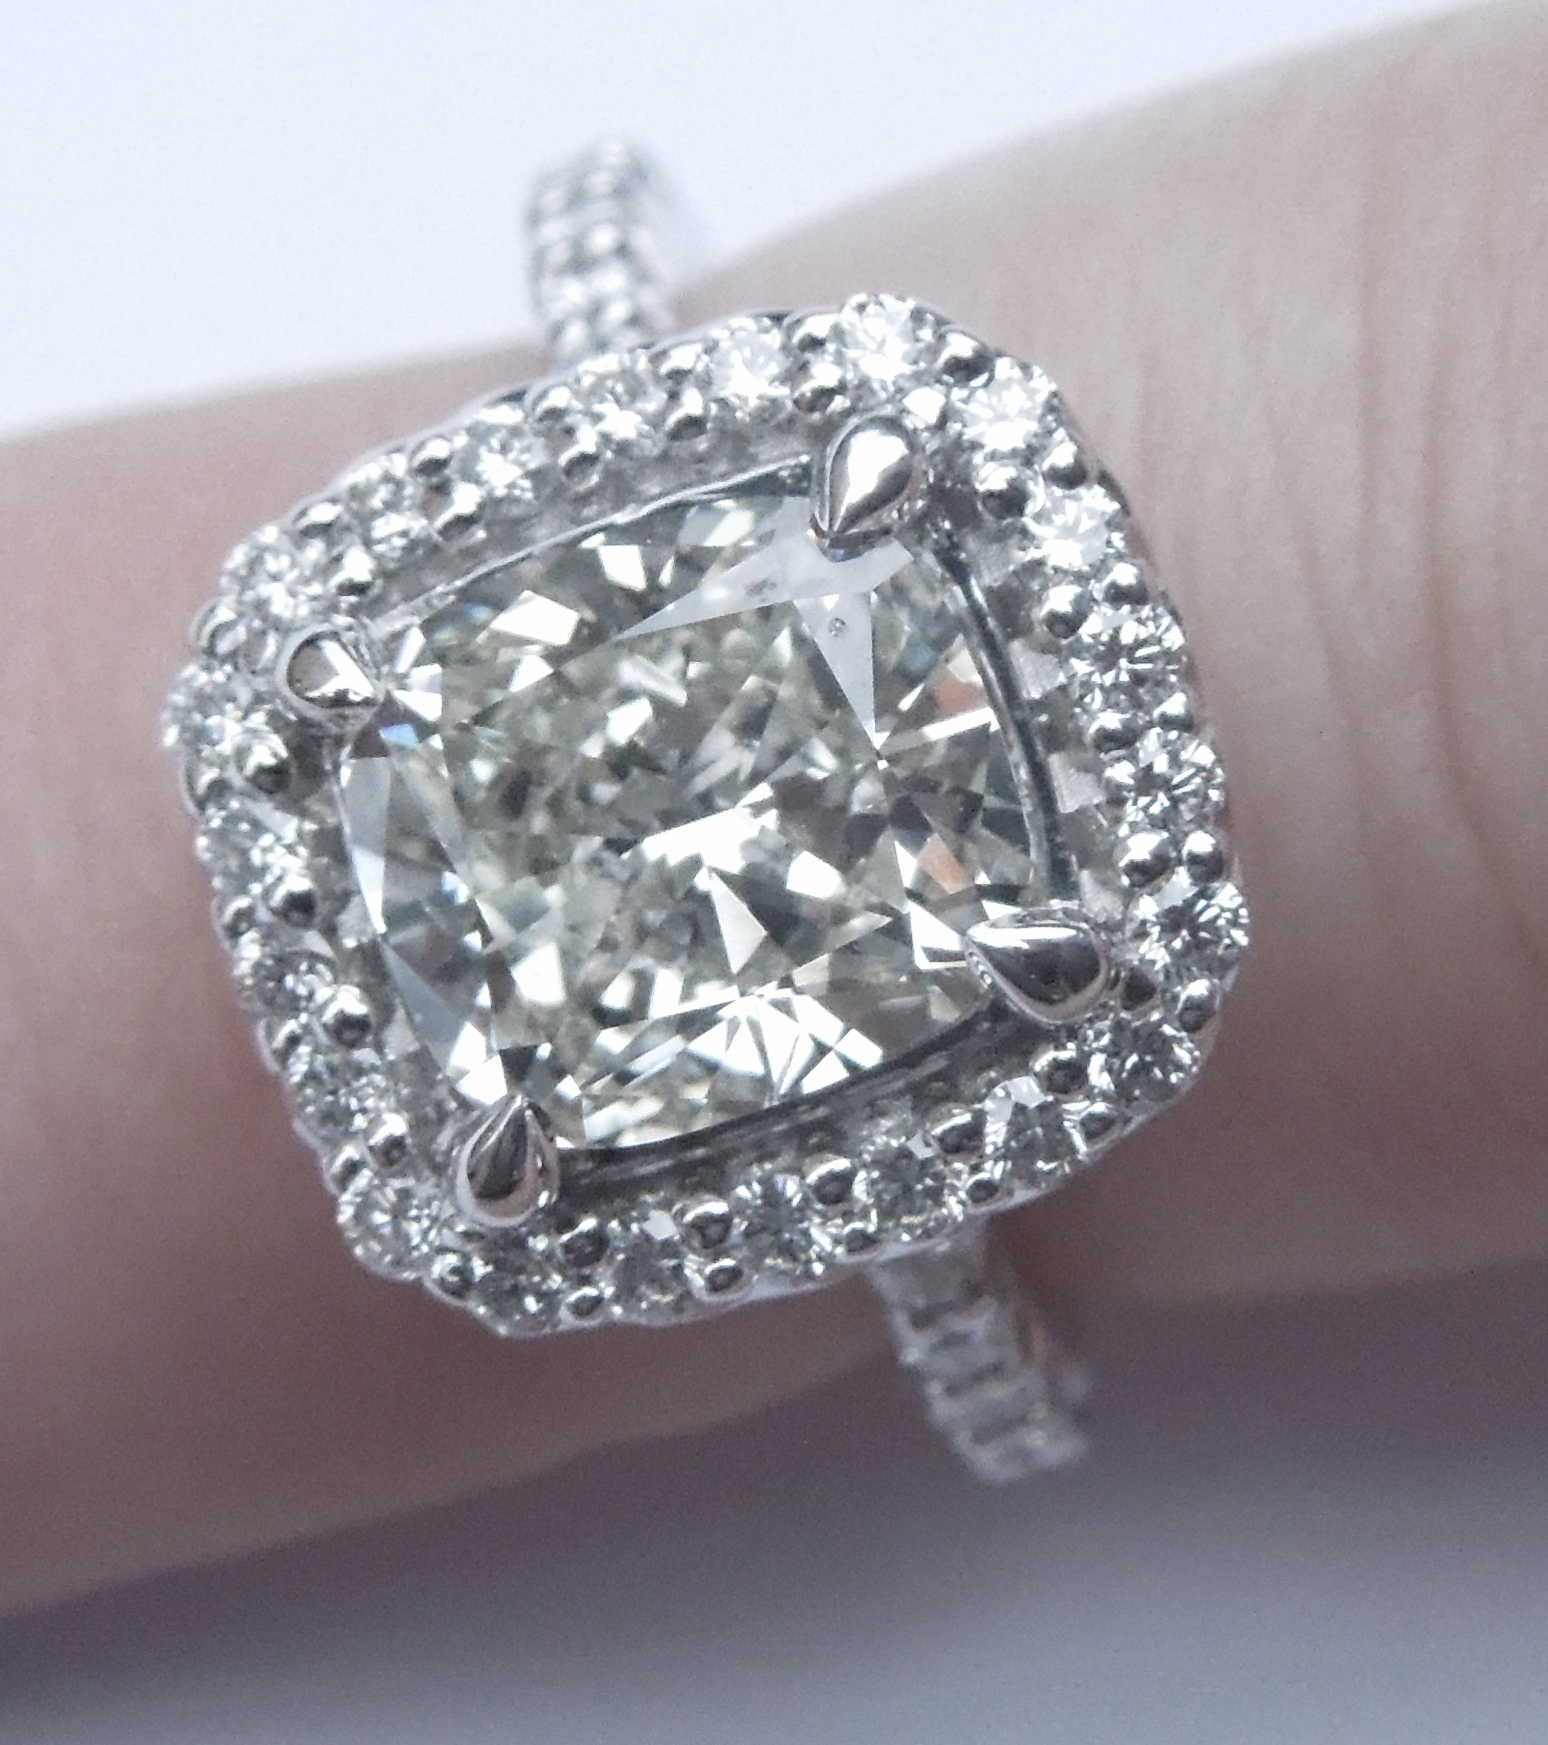 unique-cushion-cut-diamond-halo-delicate-engagement-ring-grand-rapids-jewelry-store-craft-revival